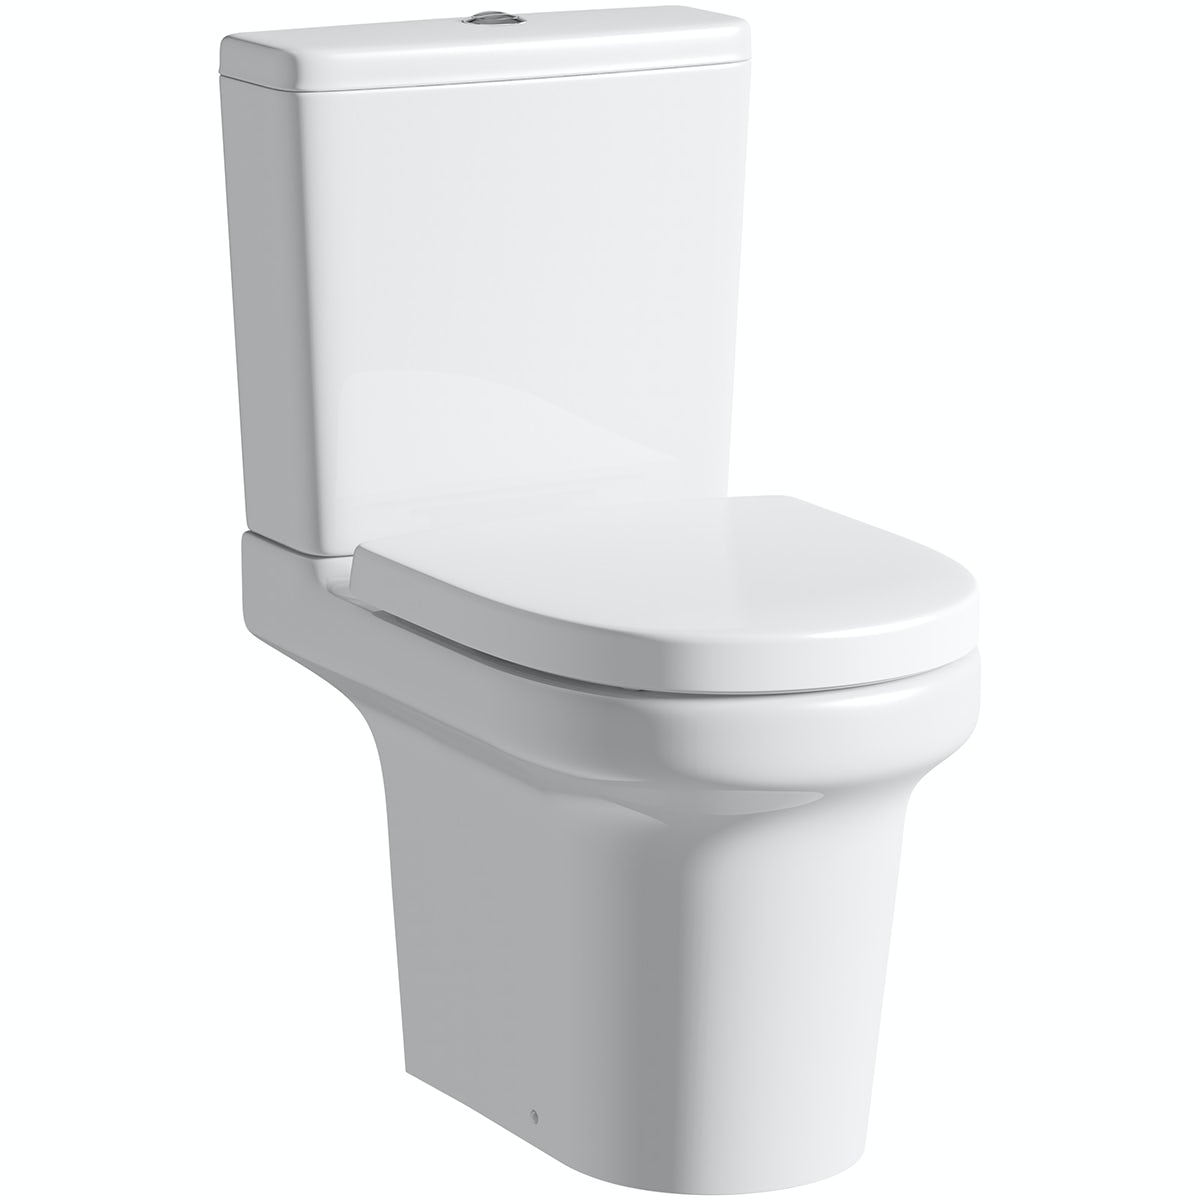 Mode Burton close coupled toilet with soft close seat with pan connector